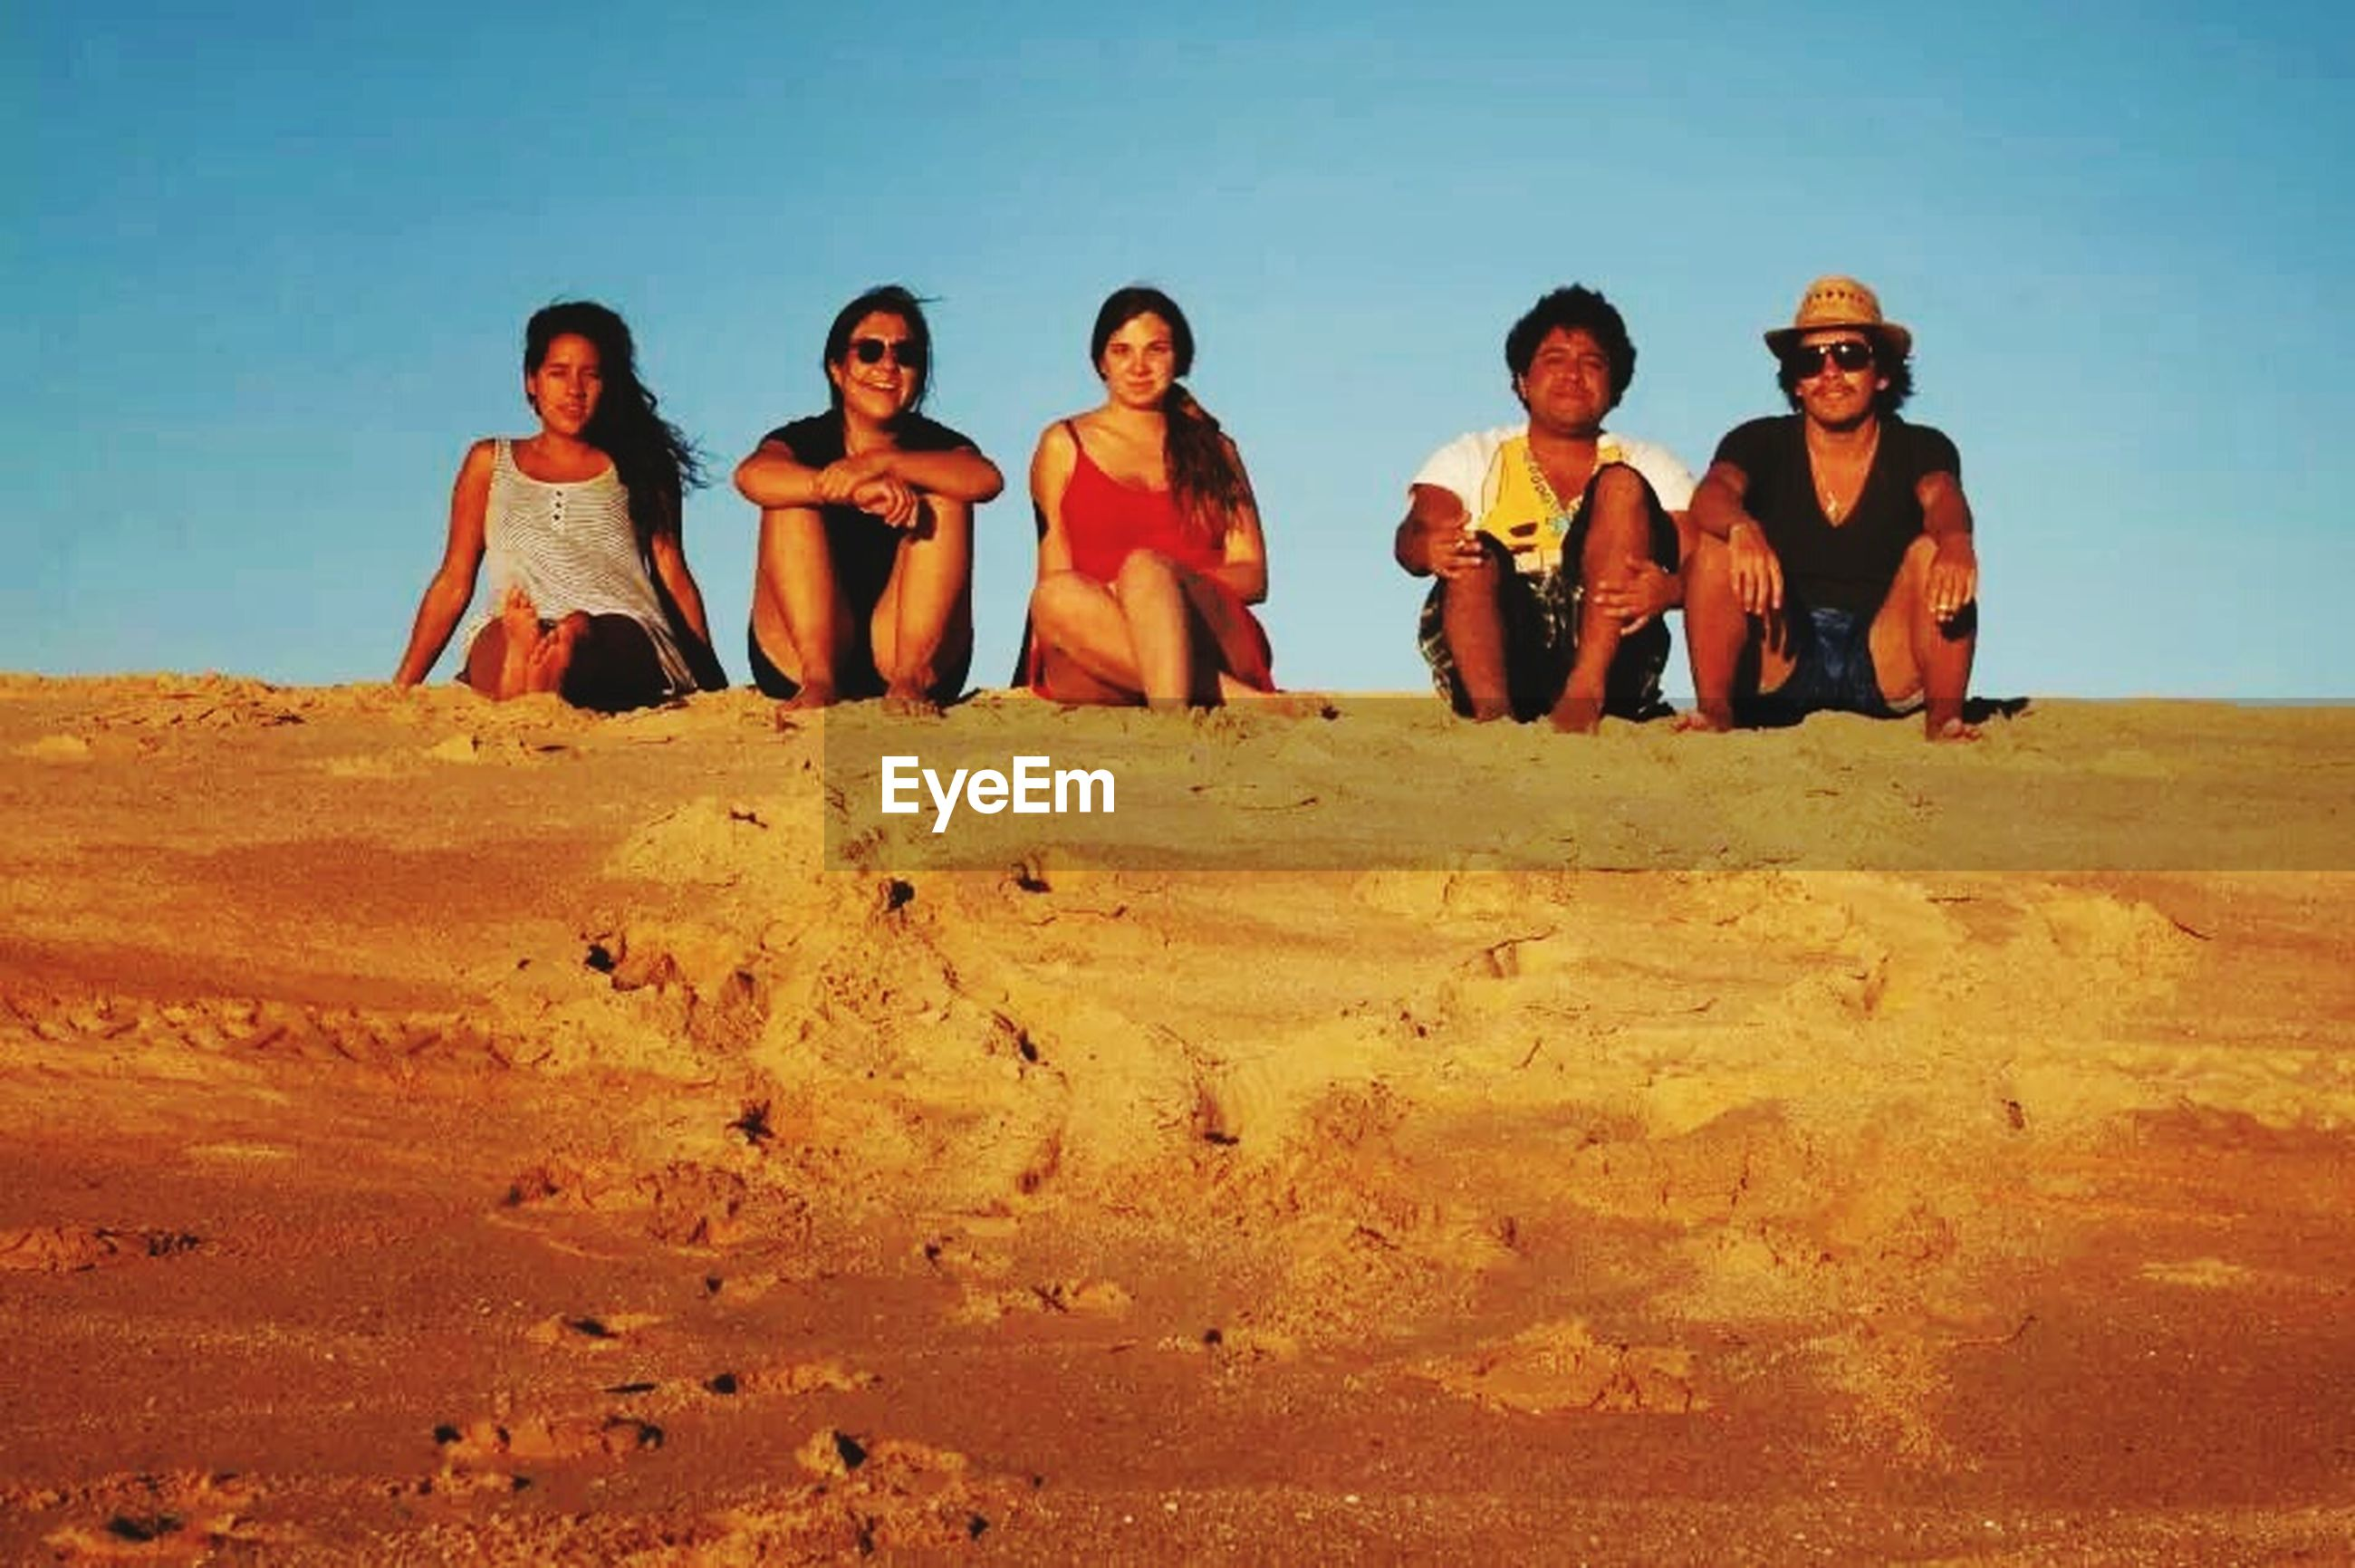 lifestyles, leisure activity, sand, togetherness, full length, clear sky, casual clothing, young men, person, bonding, vacations, desert, men, beach, love, sunlight, sky, friendship